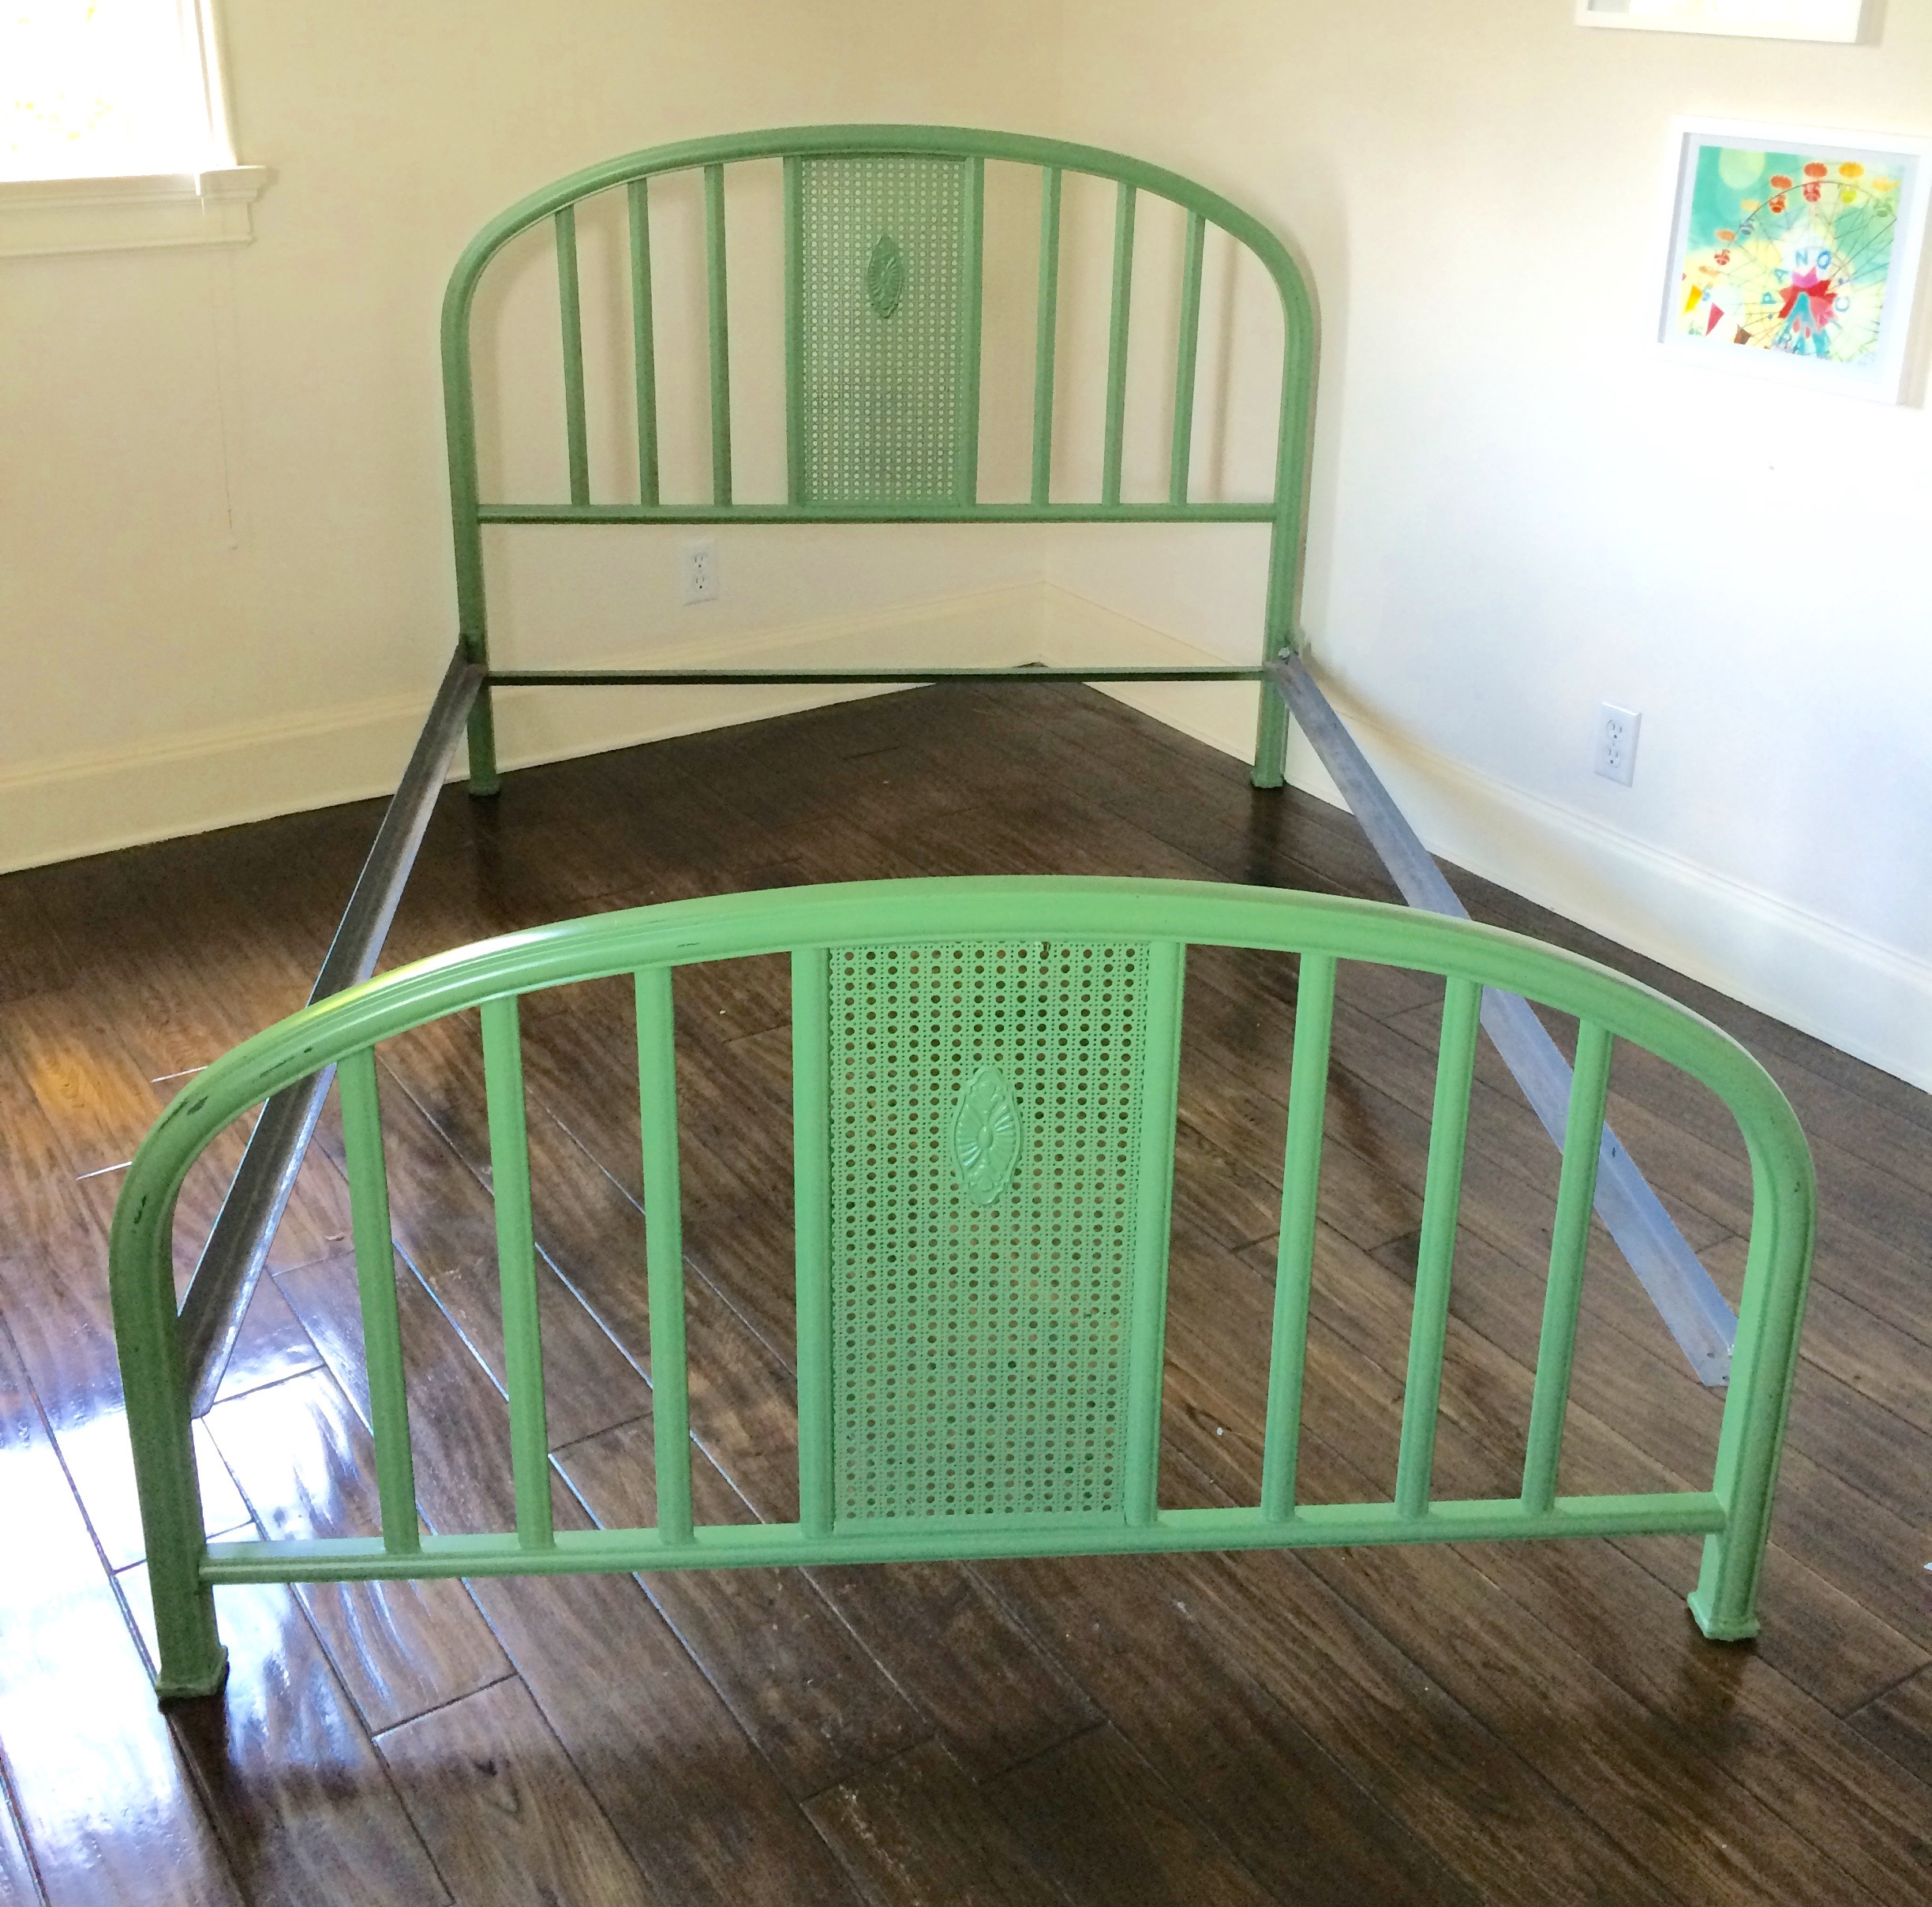 1930s Green Metal Full Size Bed in 2020 Bed frame